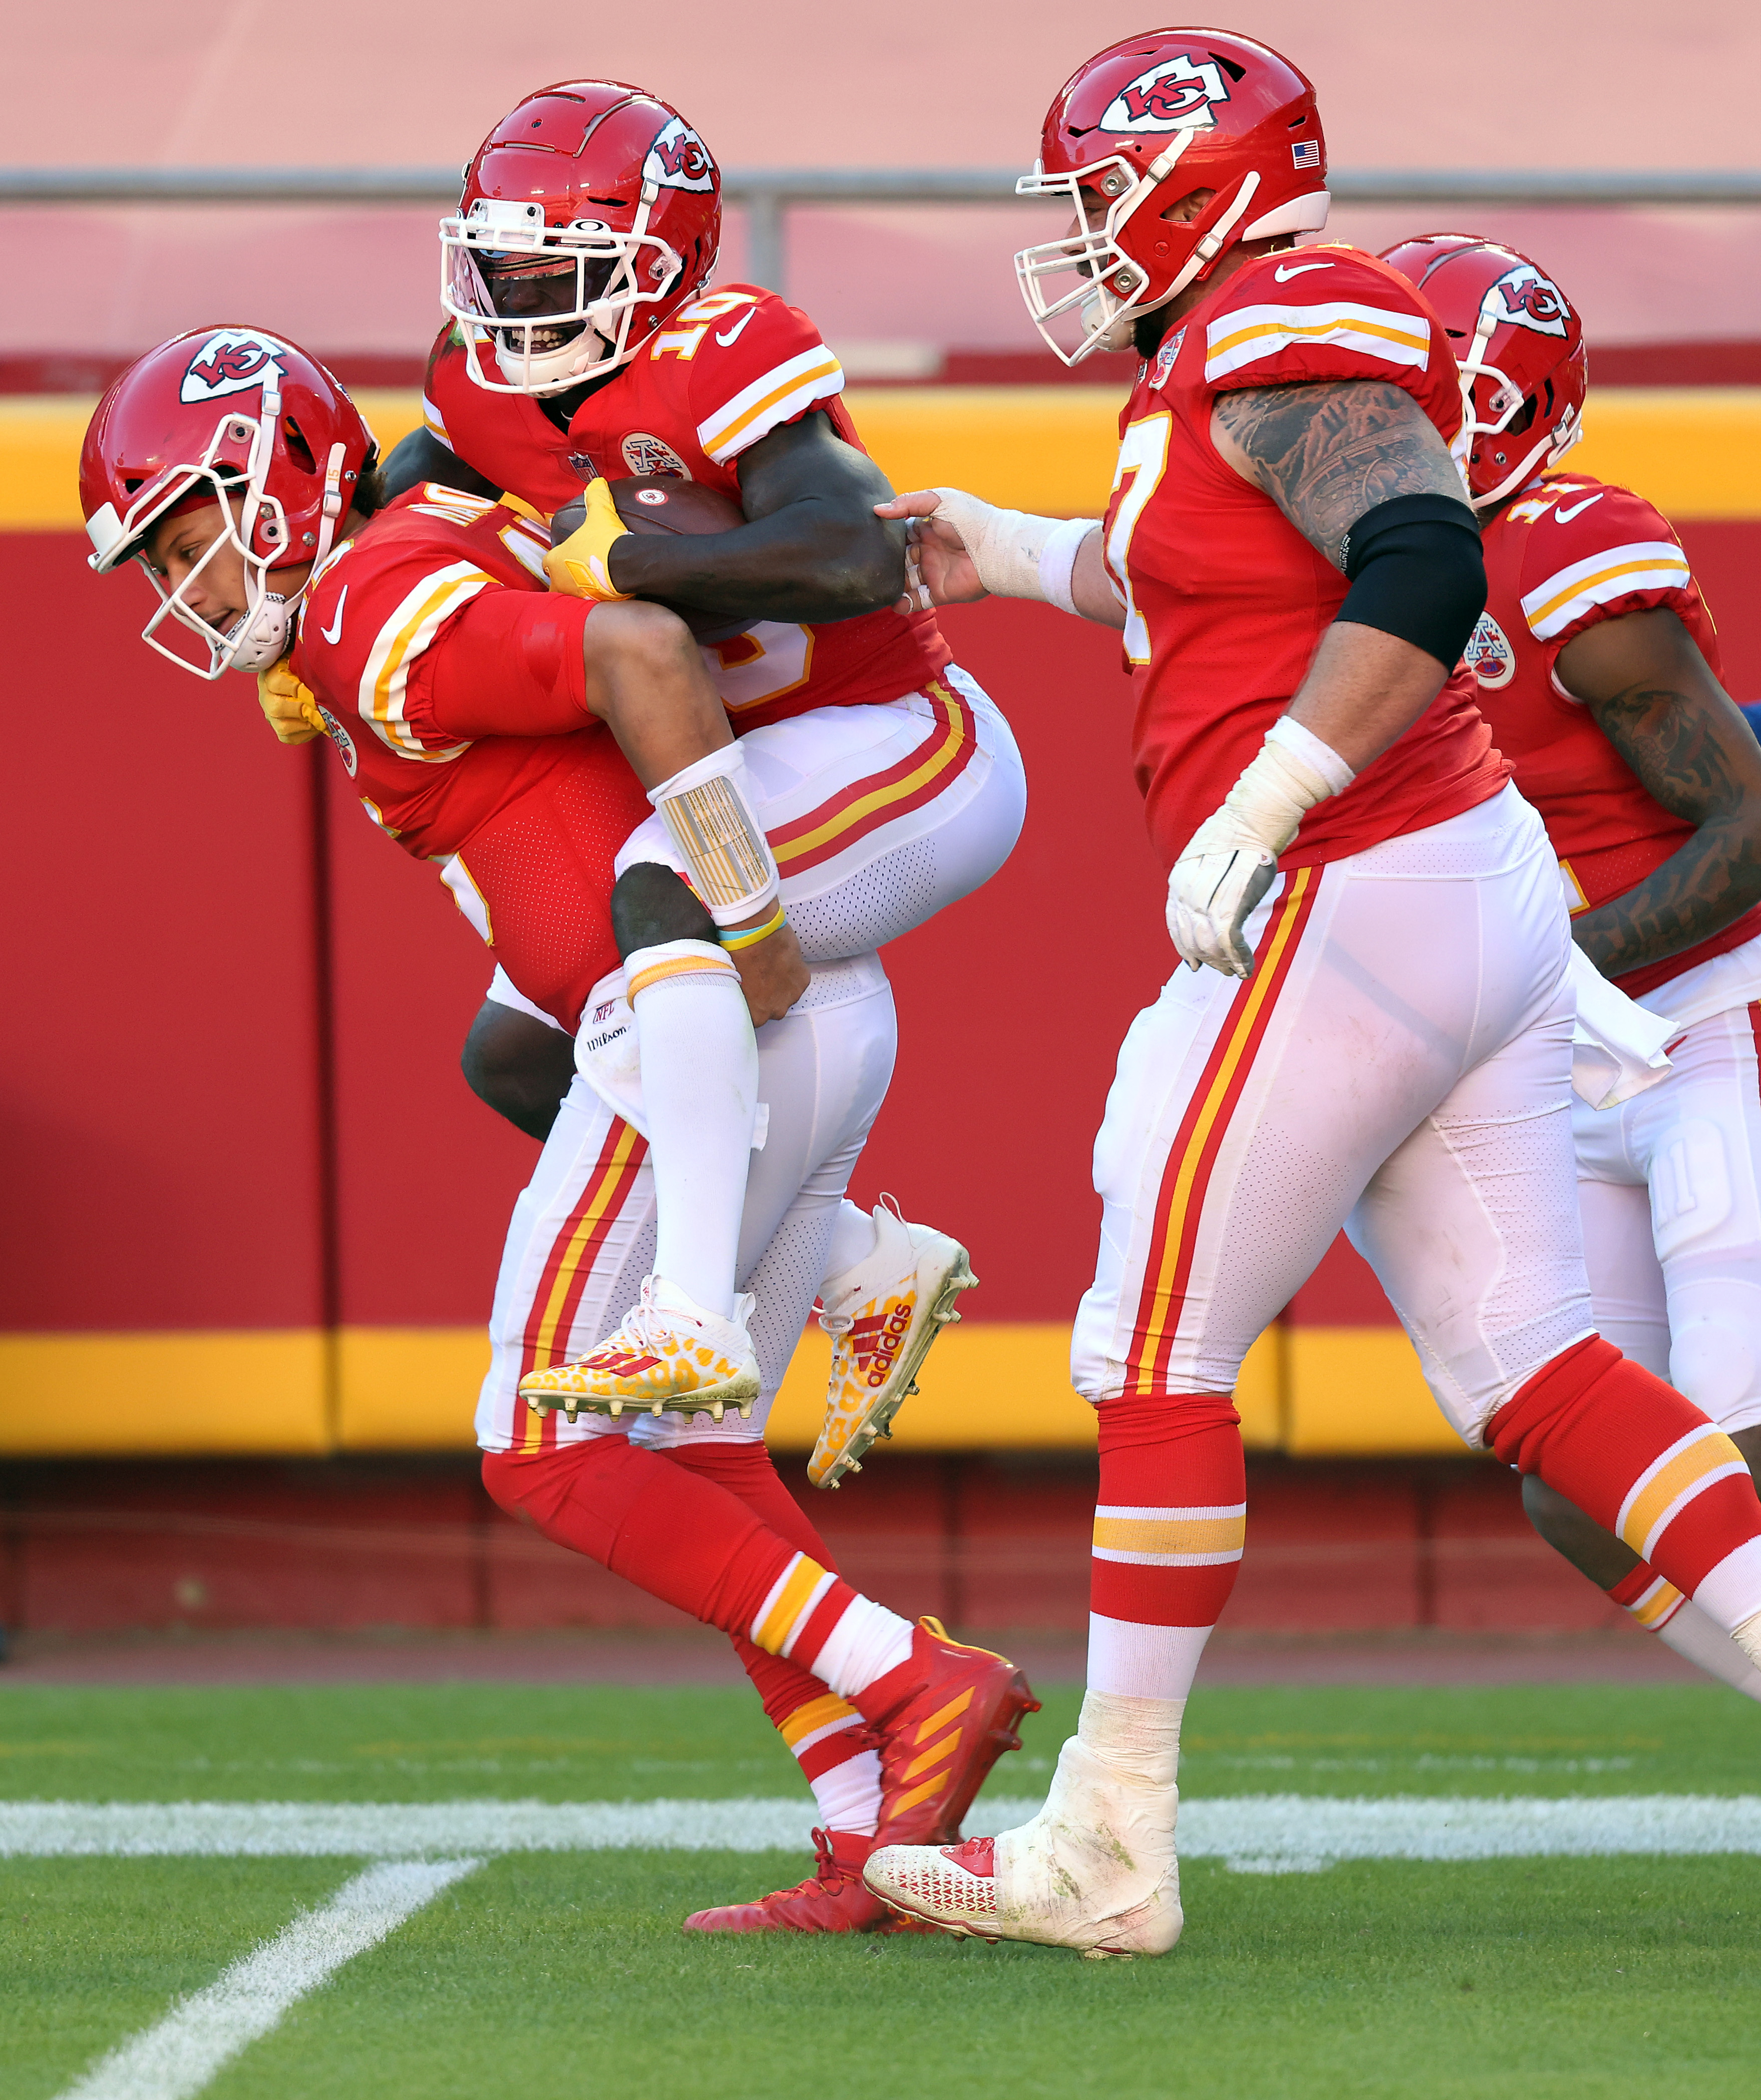 Tyreek Hill #10 of the Kansas City Chiefs celebrates with Patrick Mahomes #15 after a 41-yard touchdown against the New York Jets during their NFL game at Arrowhead Stadium on November 01, 2020 in Kansas City, Missouri.